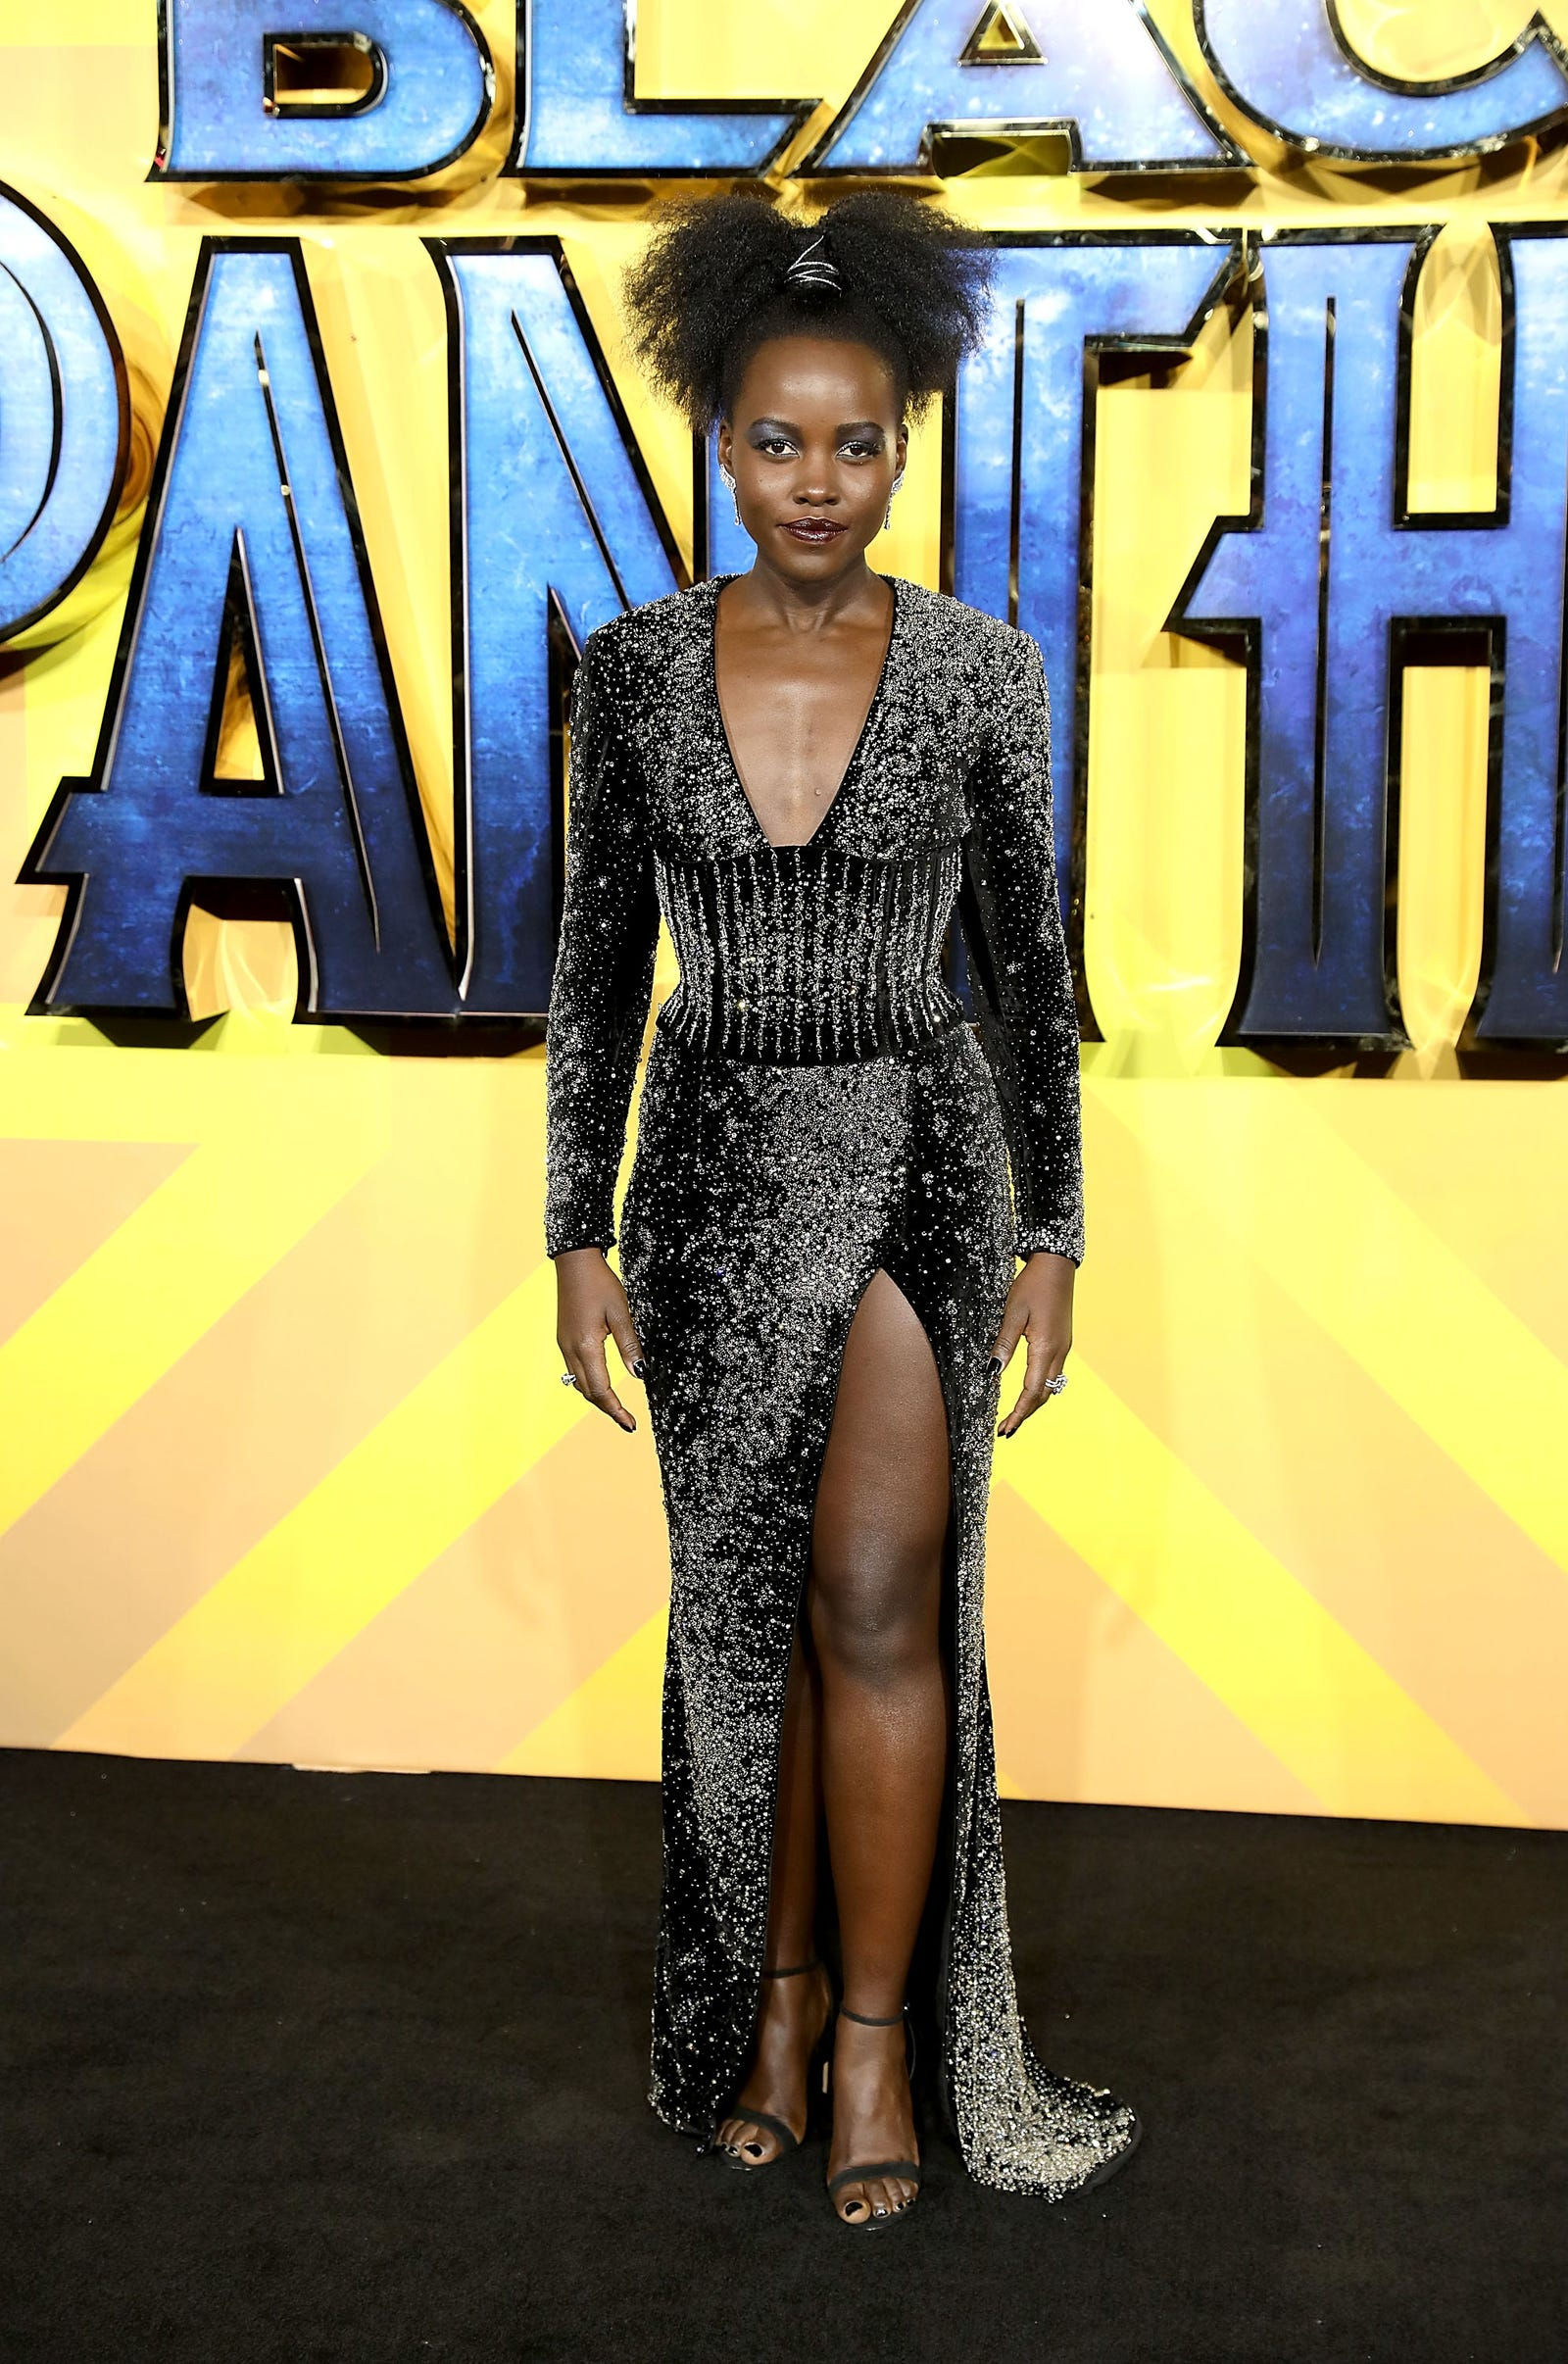 Lupita Nyong'o rocks rough and tough in her Afro-puff ... paired with shimmer, of course. (Tim P. Whitby/Tim P. Whitby/Getty Images)